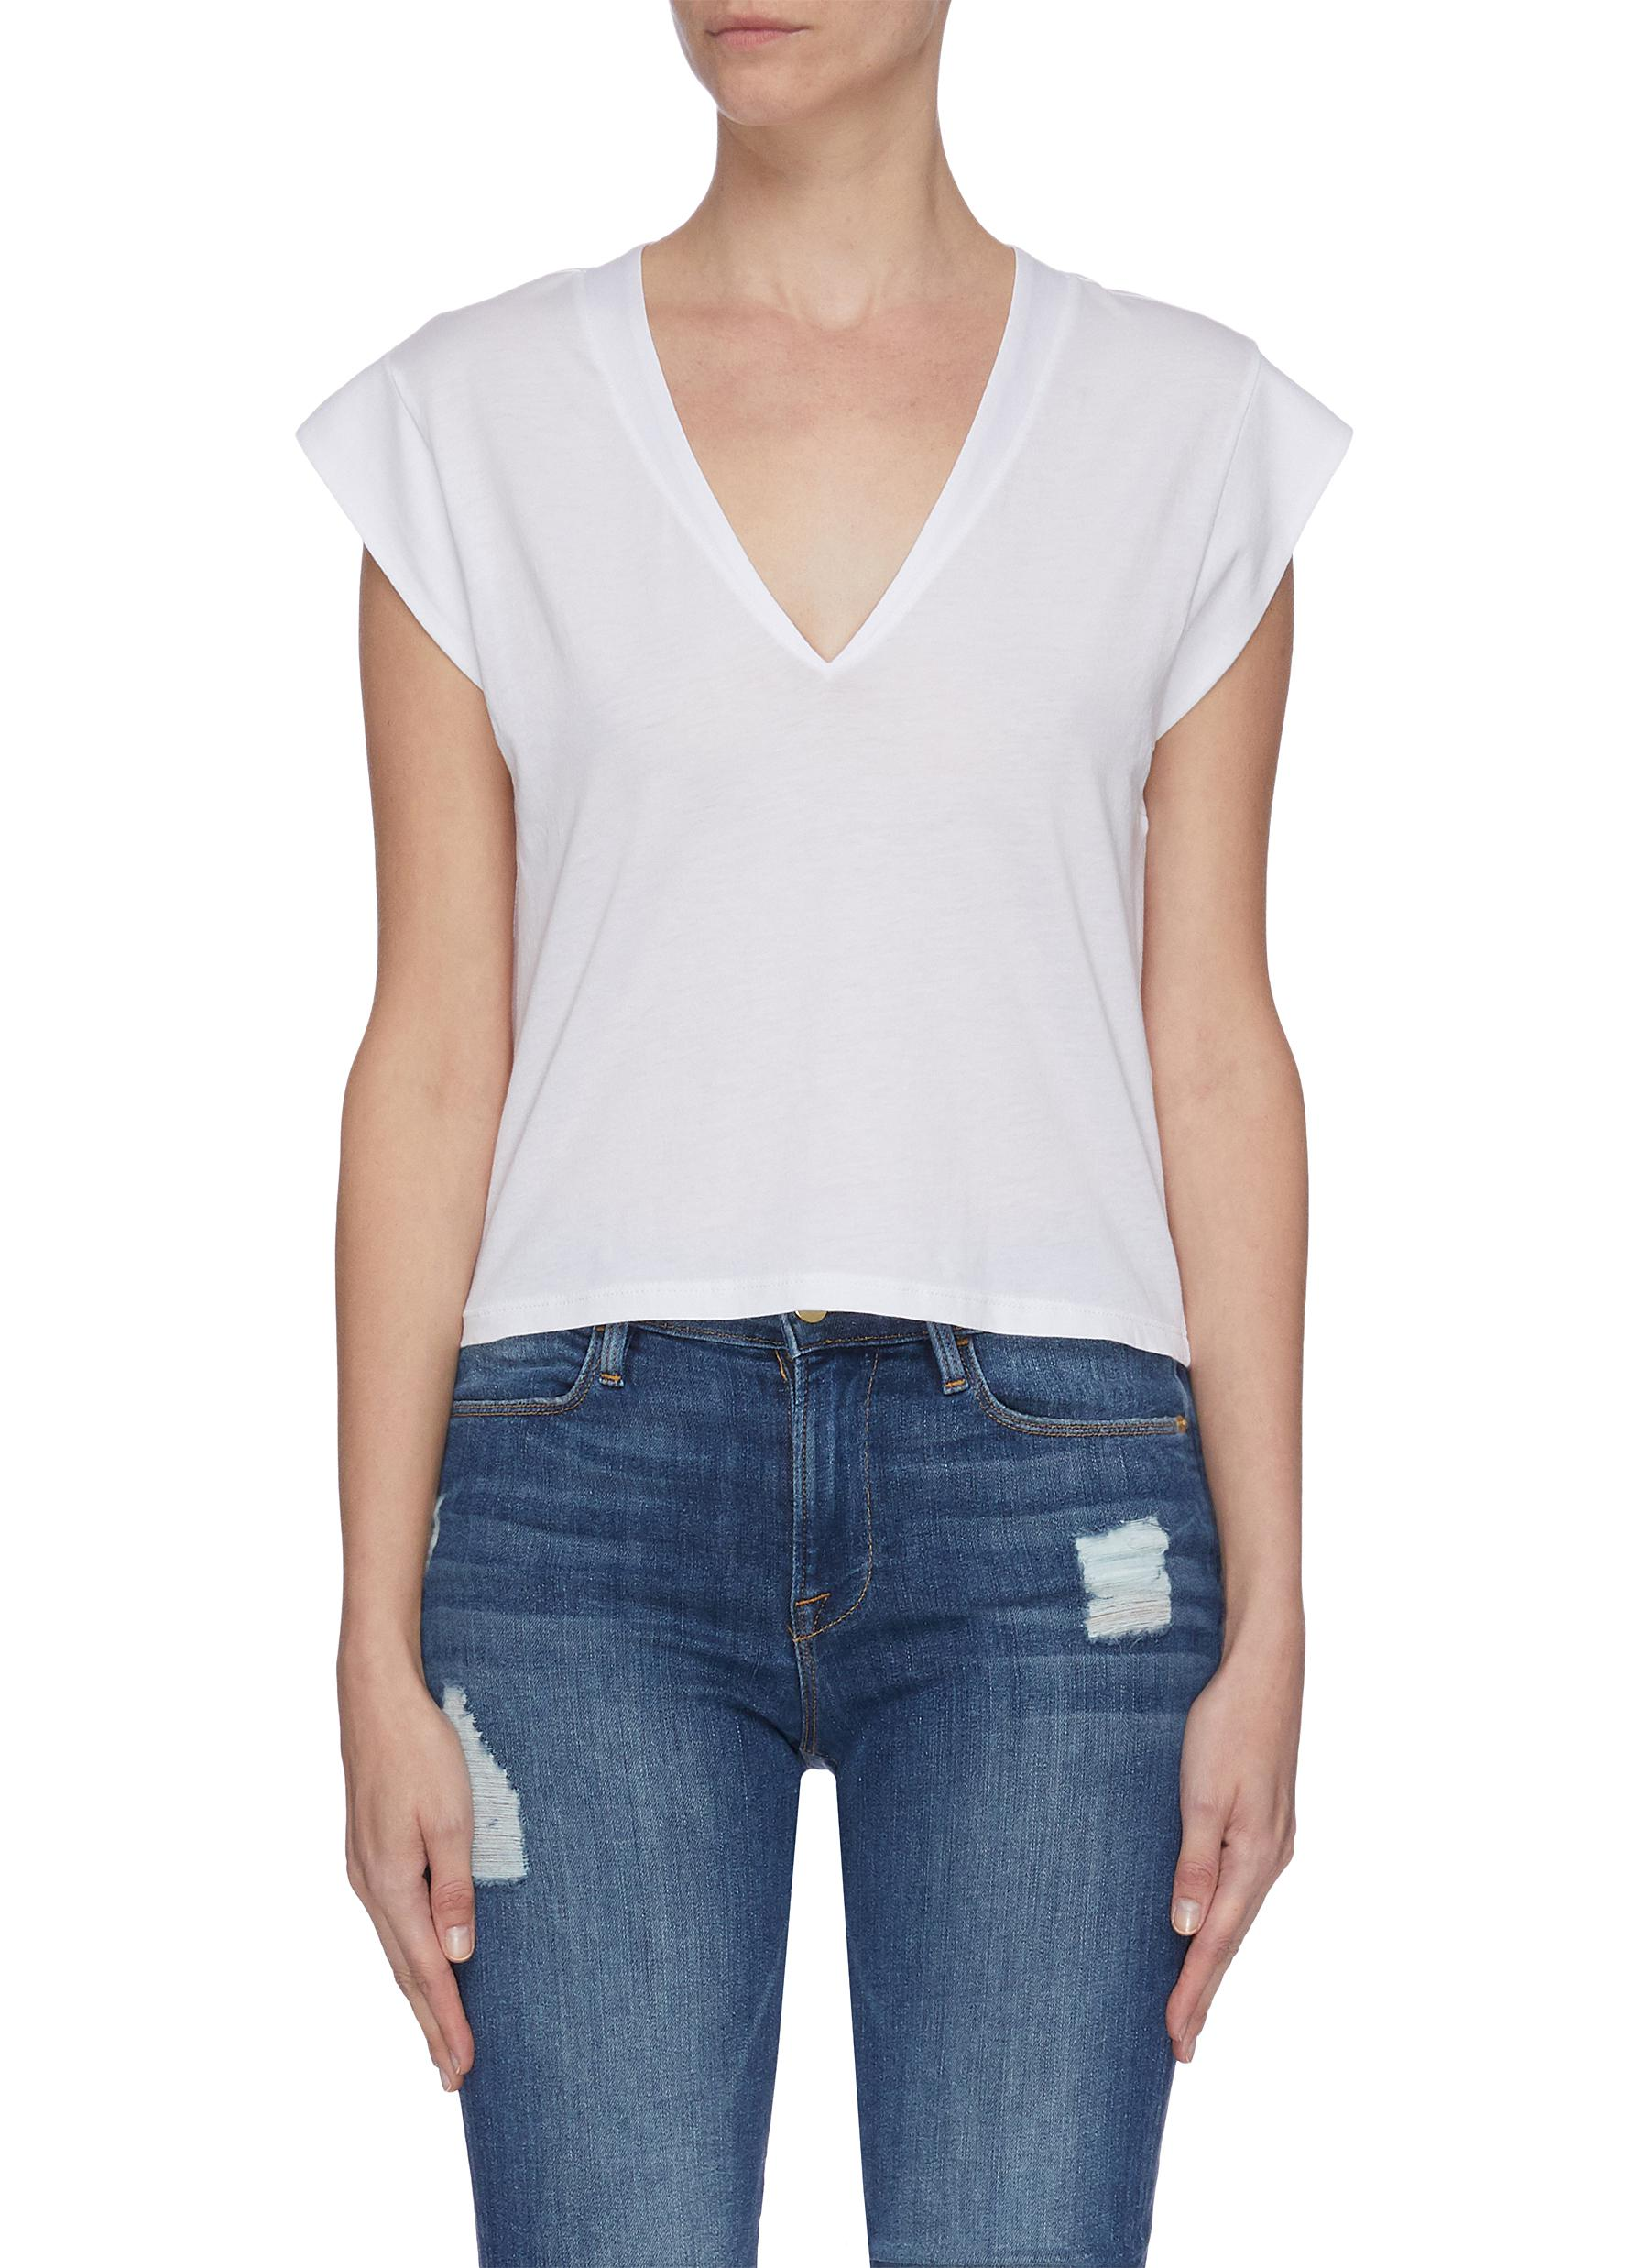 Buy Frame Denim Tops 'Le High Rise' V-neck T-shirt